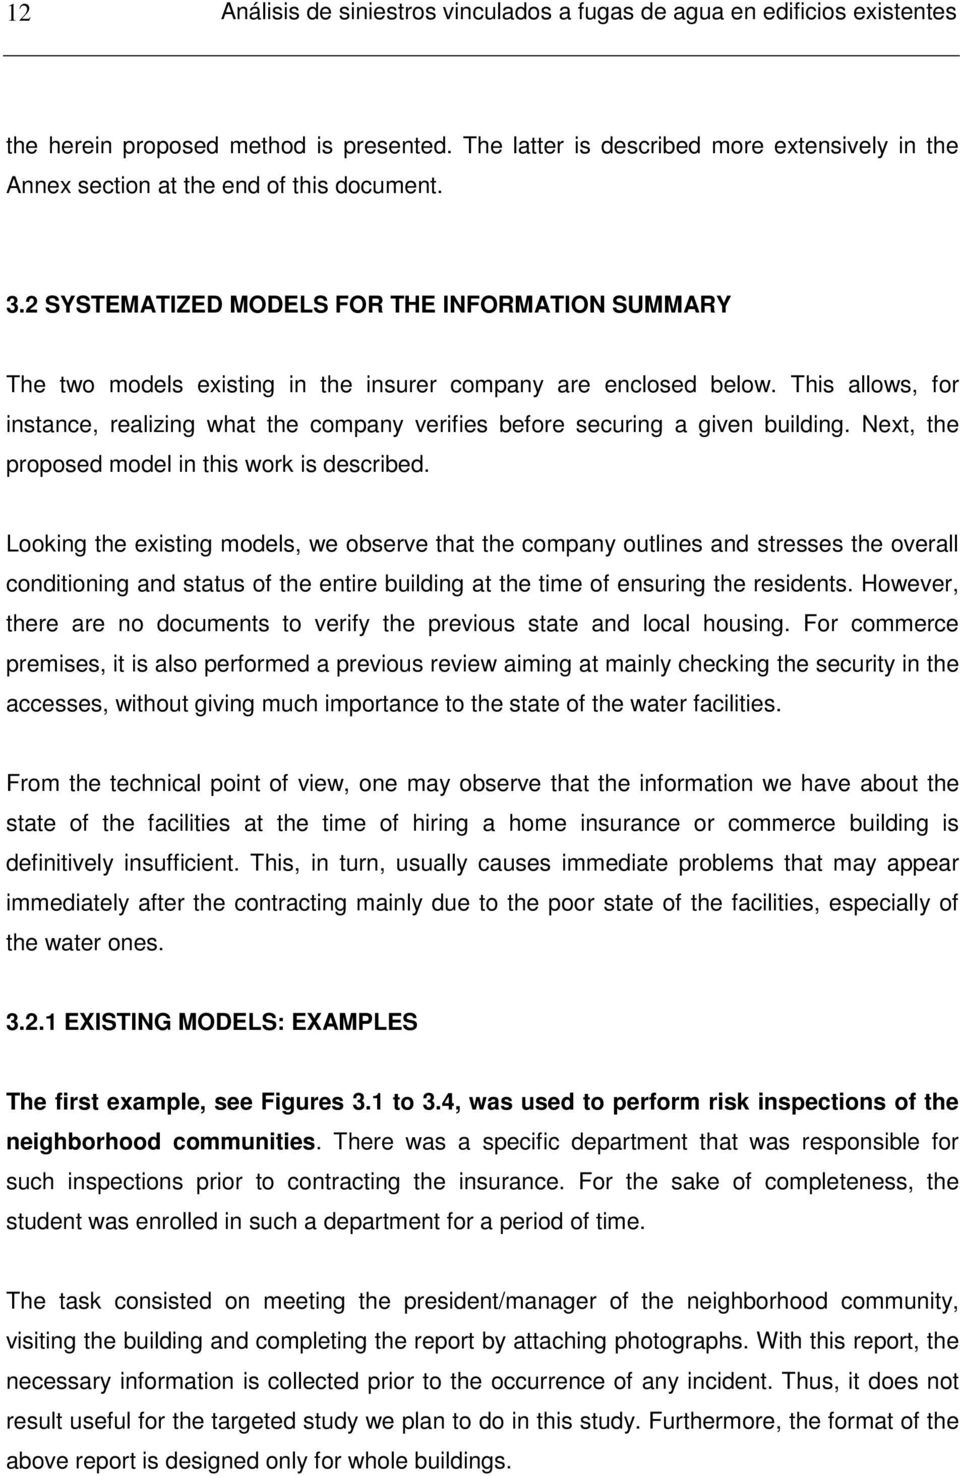 2 SYSTEMATIZED MODELS FOR THE INFORMATION SUMMARY The two models existing in the insurer company are enclosed below.